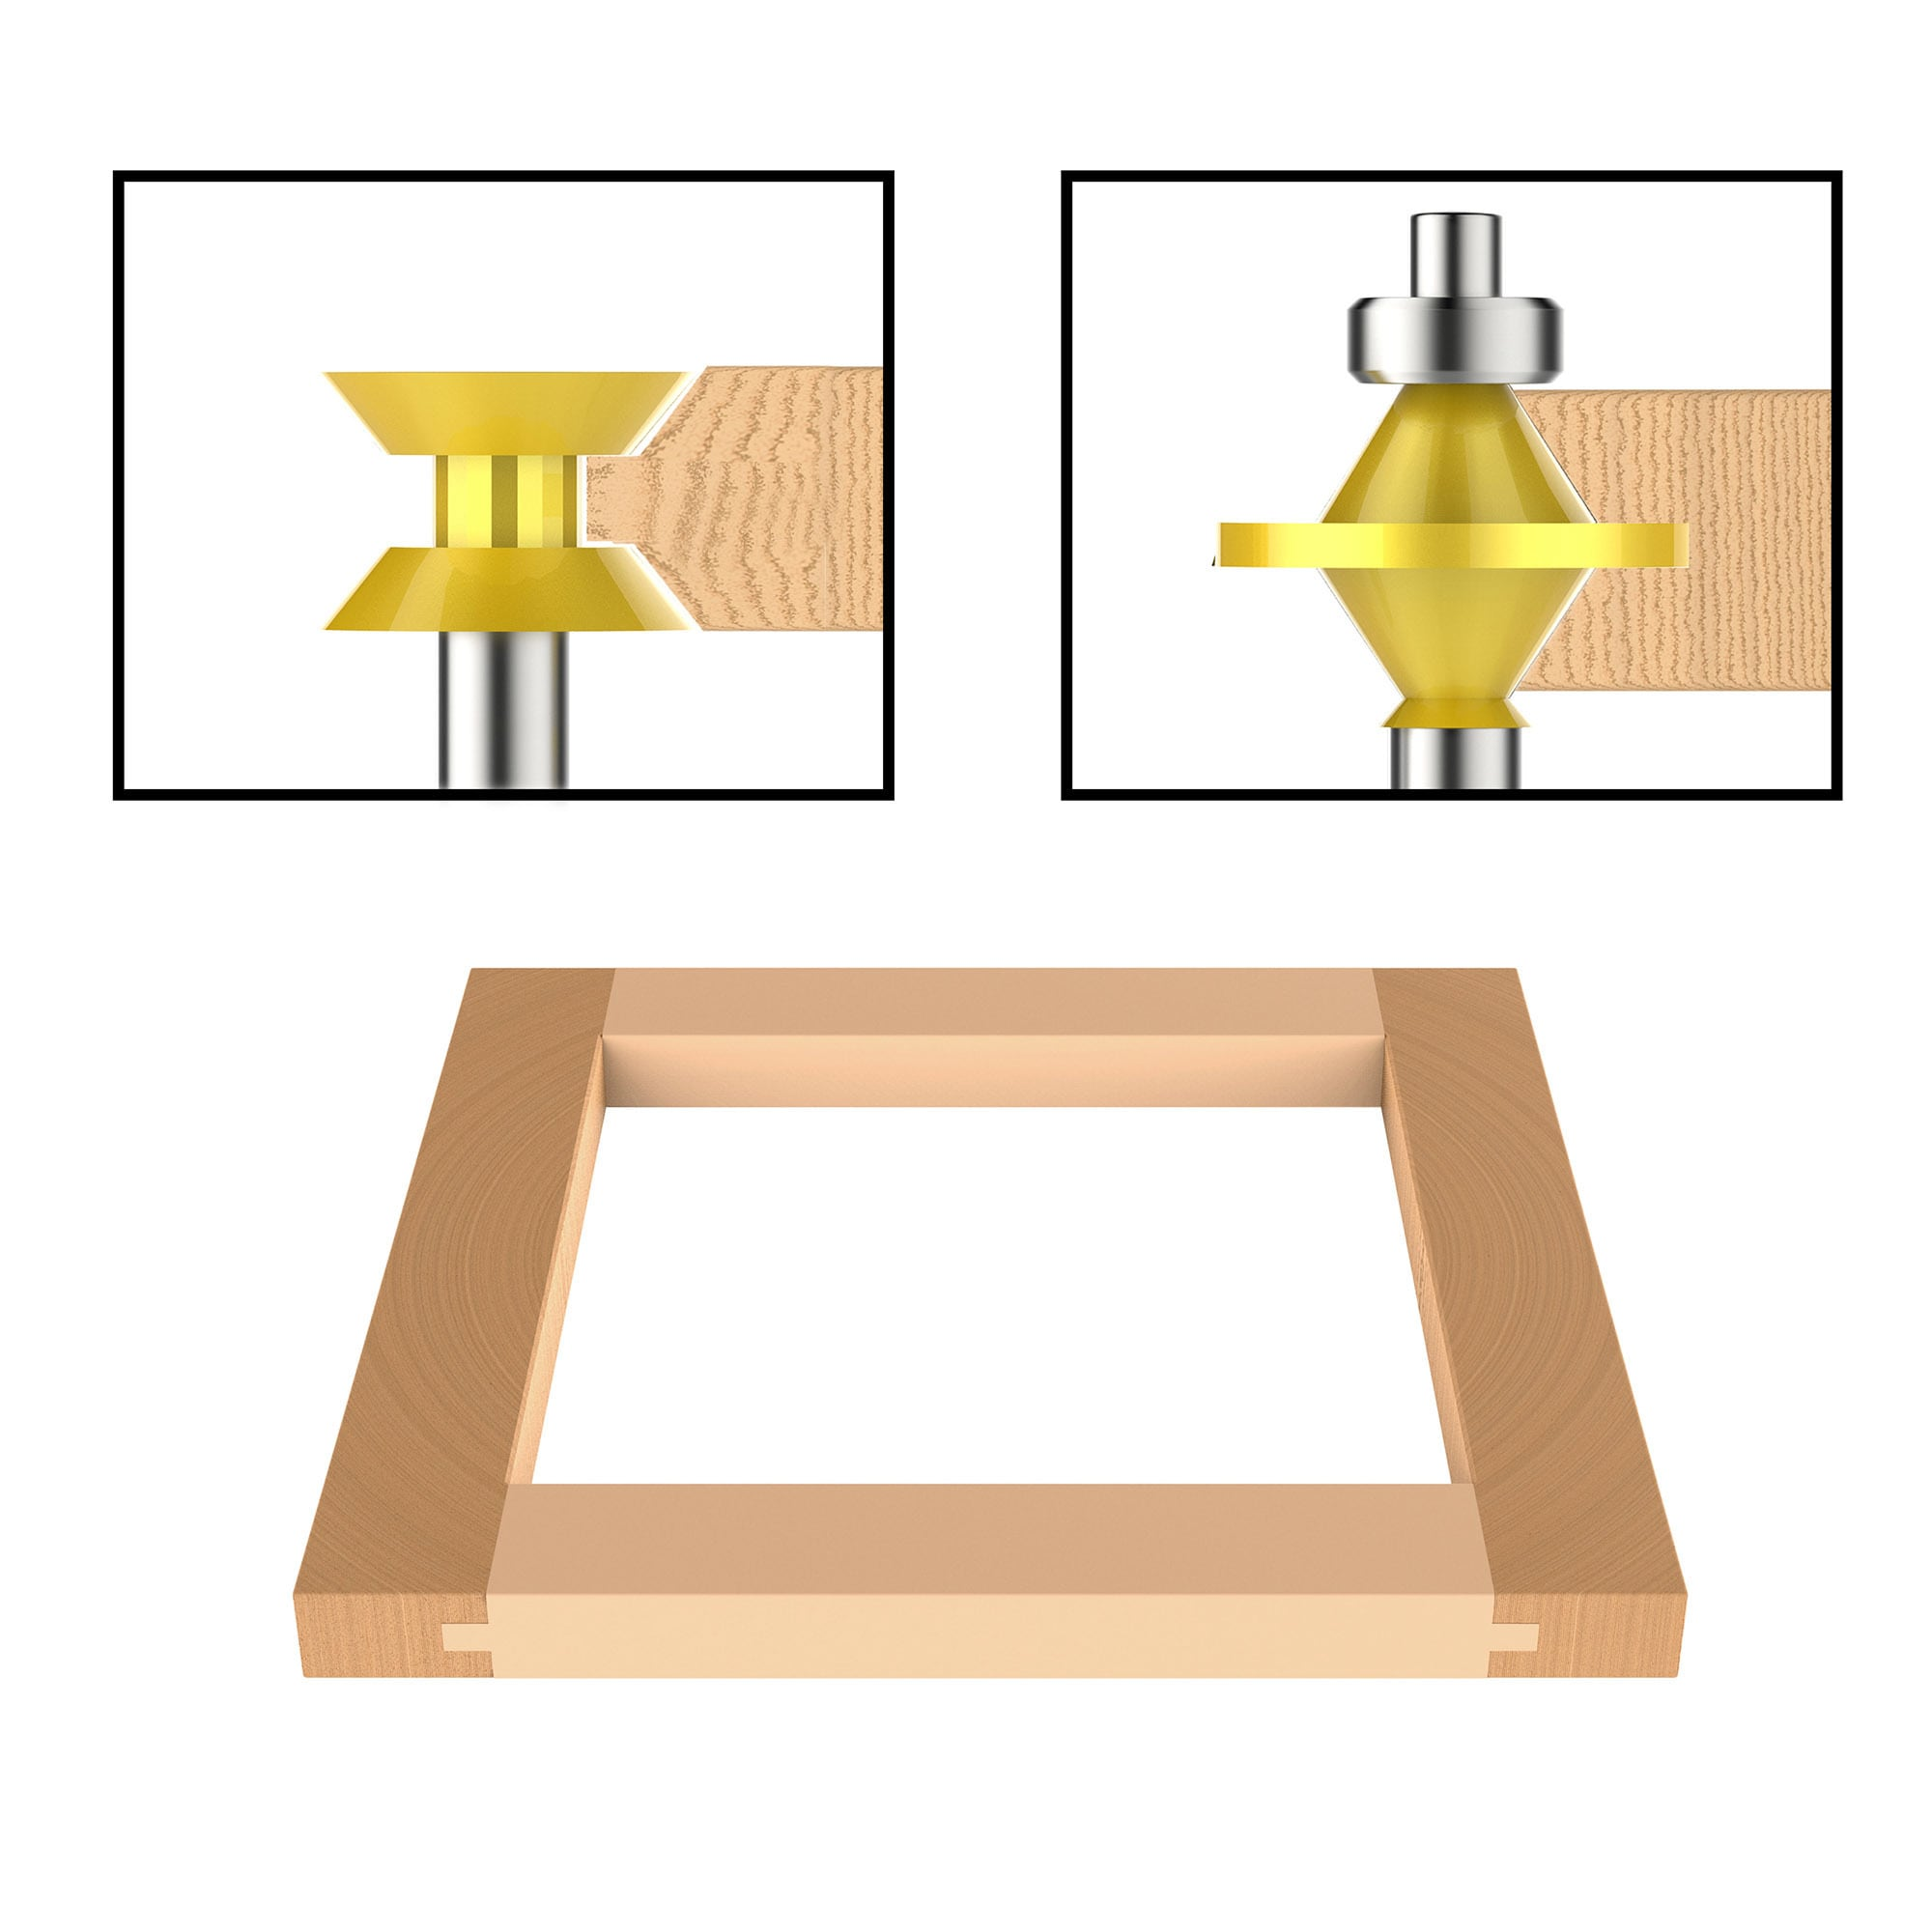 Tongue And Groove Router Bit Set With Inch Shank And Wood Storage Box 2 Piece Kit By Stalwart